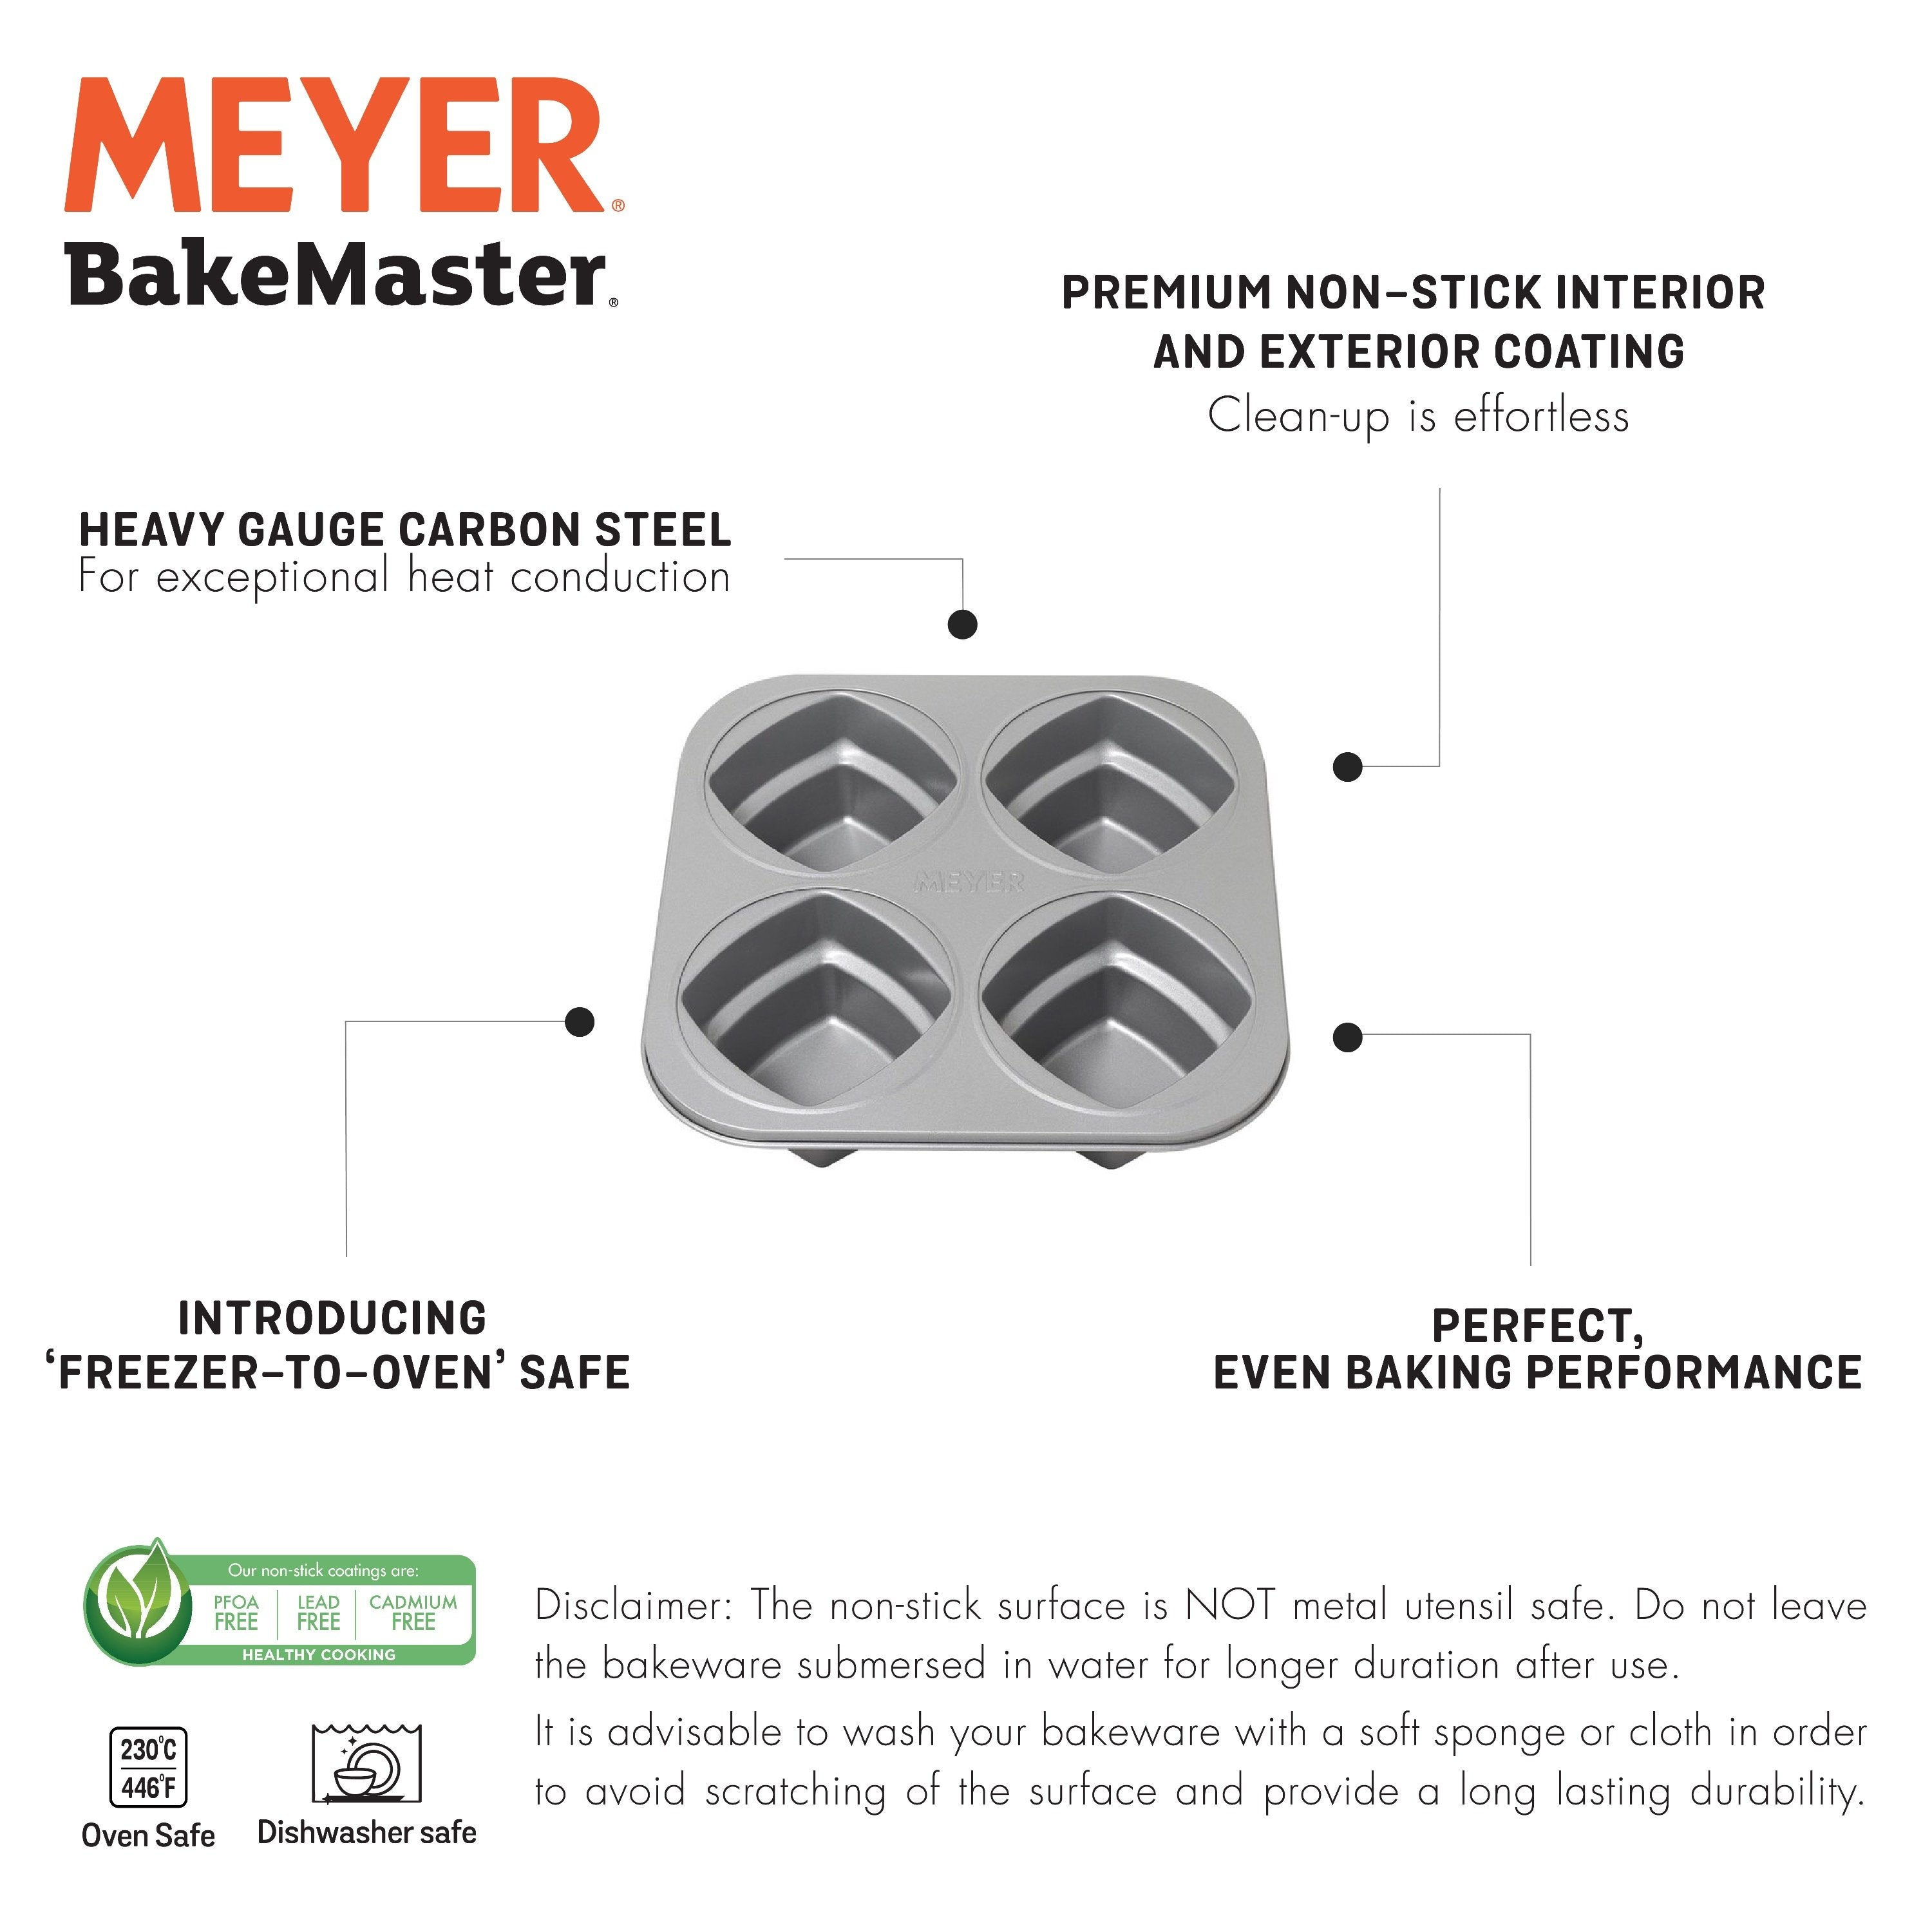 Meyer Bakemaster Set - 4-Cup 2-Tier Square Cake Pan + Baking Book - Pots and Pans